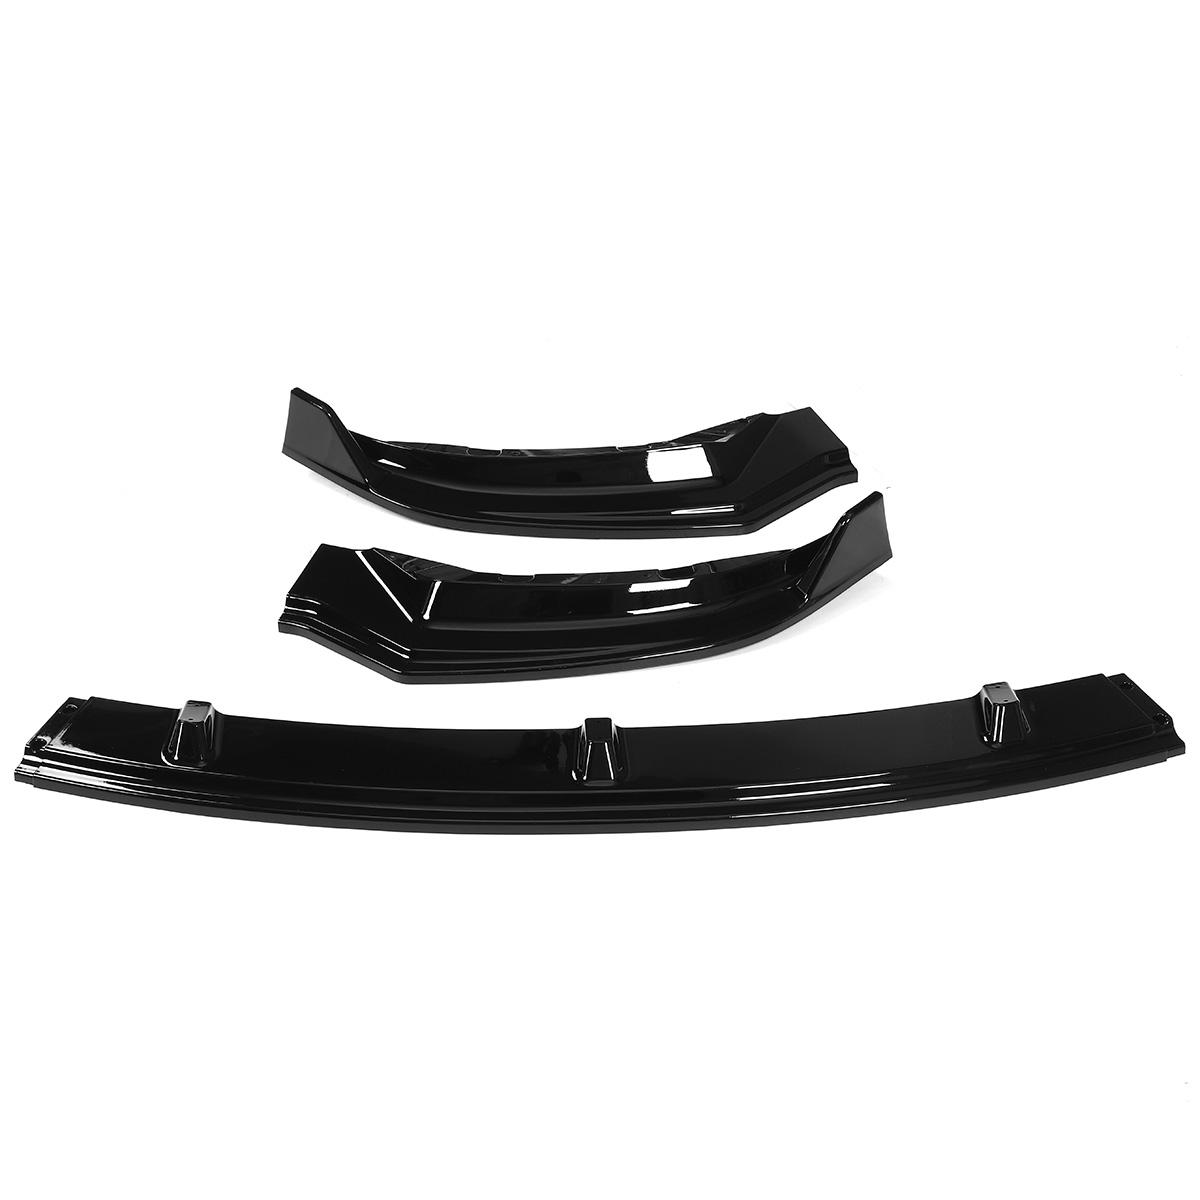 3Pcs Glossy Black Car Front Bumper Protector Lip Body Kit SpoilerFor Tesla Model 3 2016-2019 from Banggood